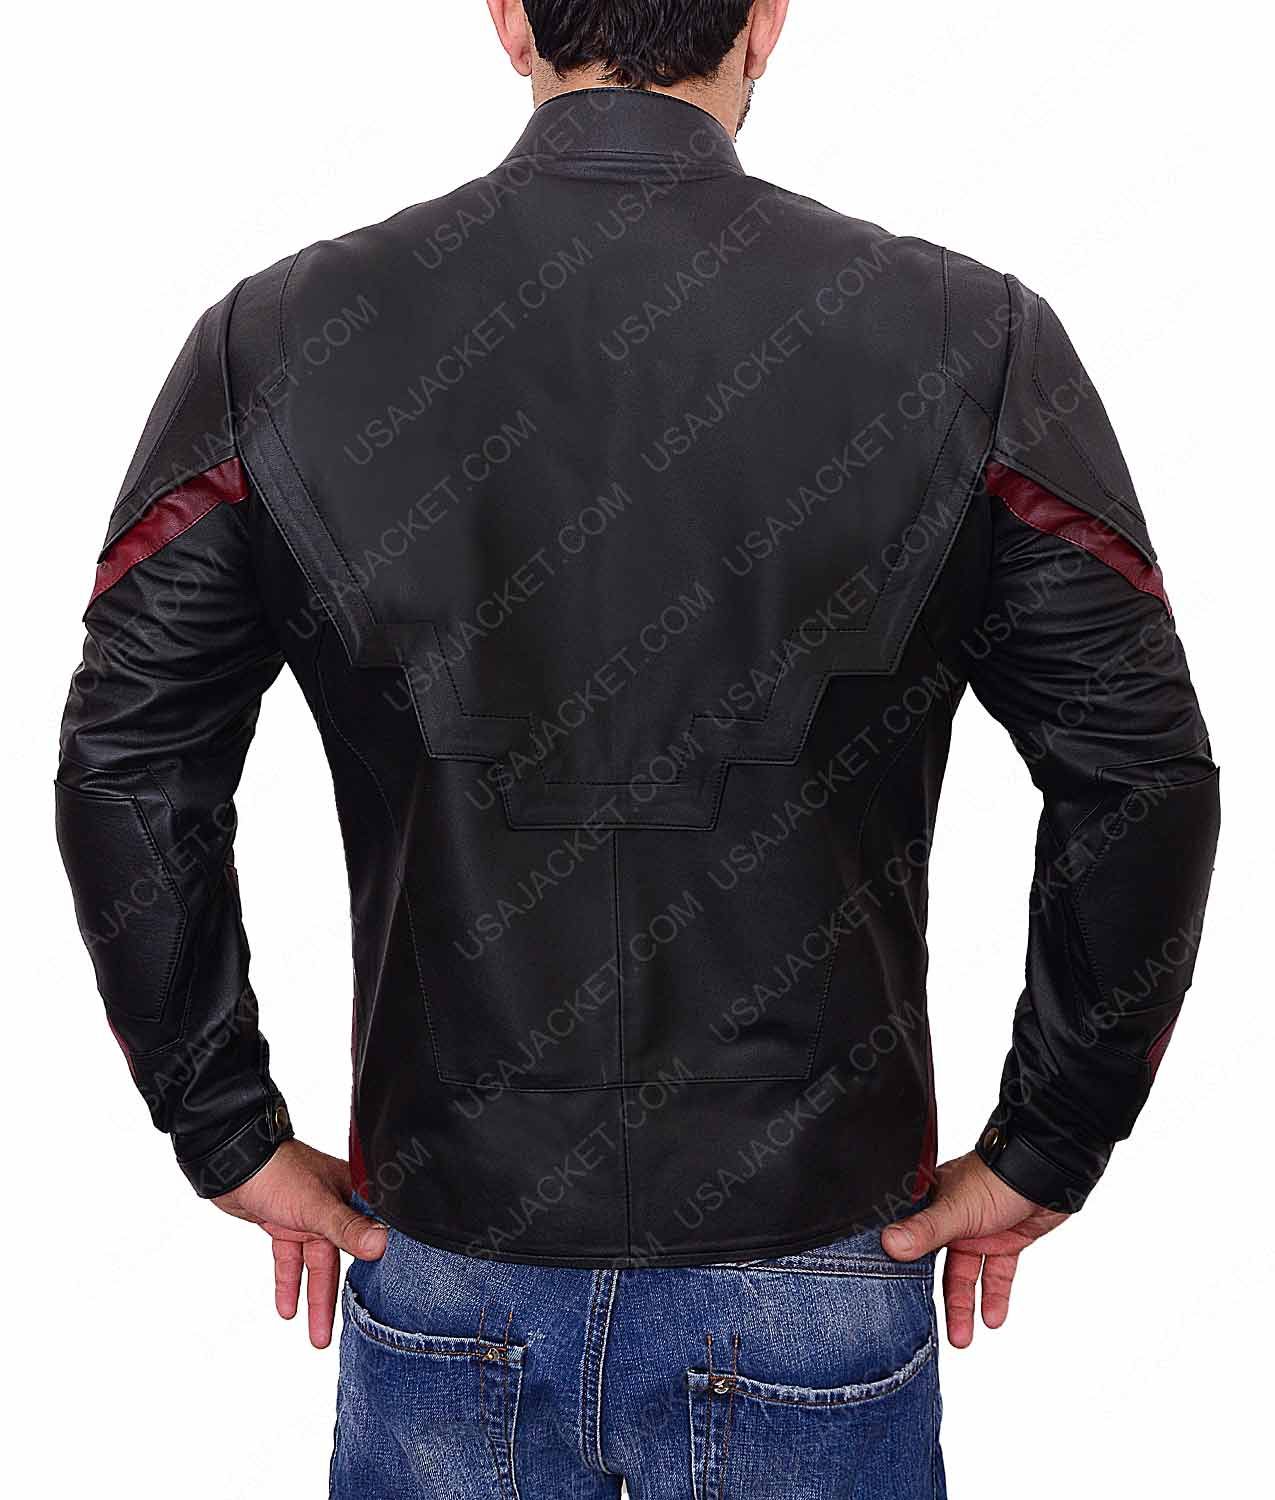 Baby Driver Varsity Jacket besides Who Is Irving Suburban Car Salesman On Mr Robot likewise Han Solo Hoth Parka Jacket further Meet Colleen Wing The Real Hero Of Marvels Iron Fist furthermore Arrow Mister Terrific Jacket. on marvel superhero robot